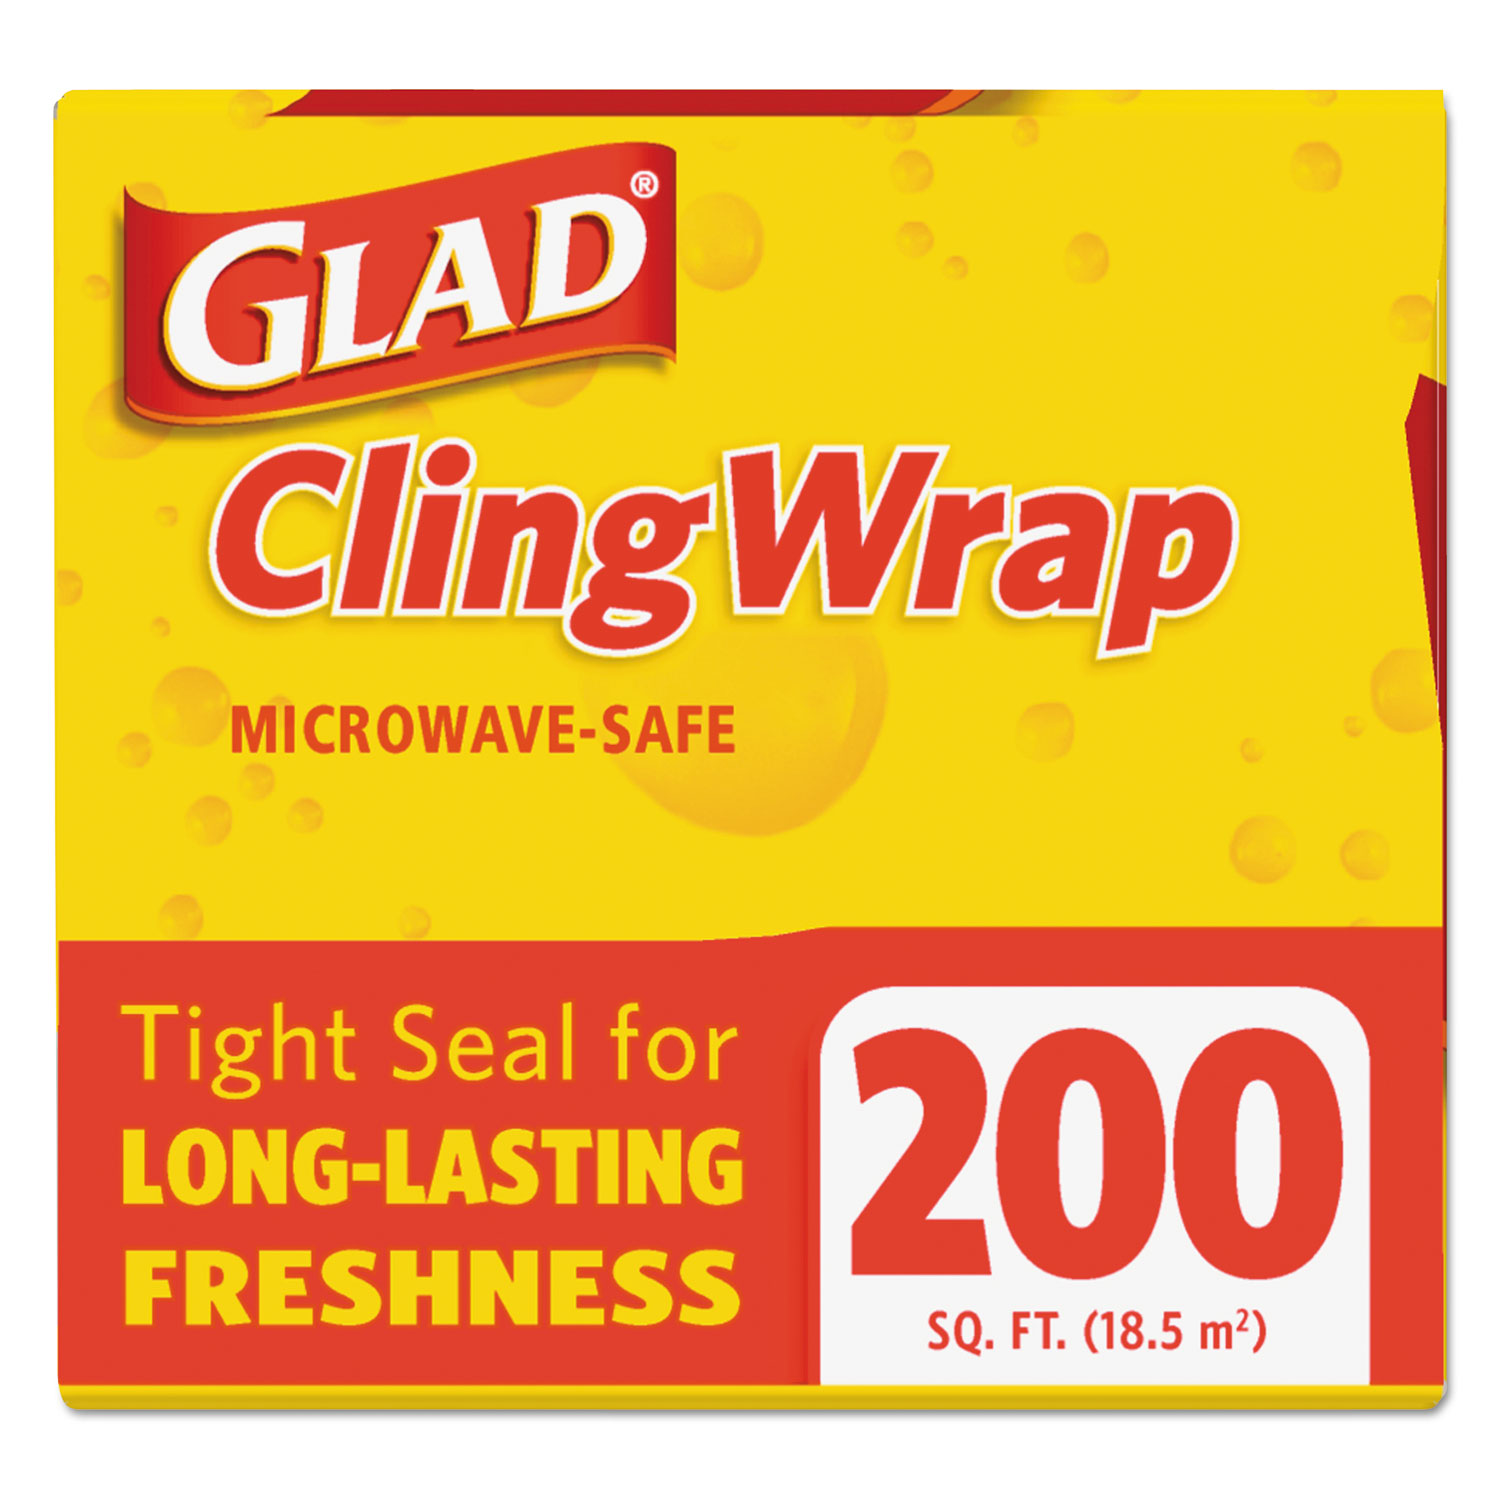 ClingWrap Plastic Wrap, 200 Square Foot Roll, Clear